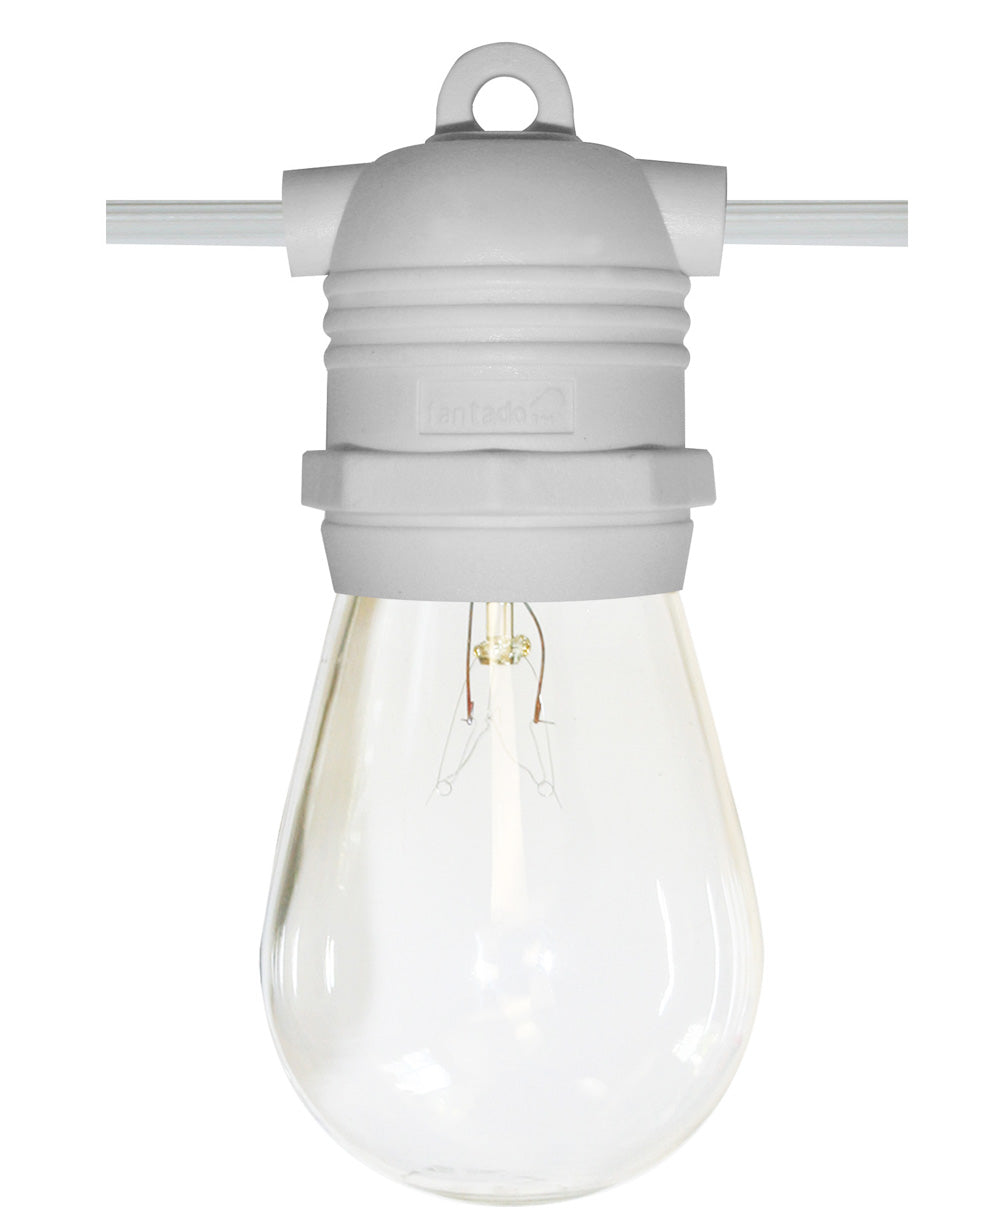 24 Socket Outdoor Commercial String Light Set, S14 Bulbs, 54 FT White Cord w/ E26 Medium Base, Weatherproof